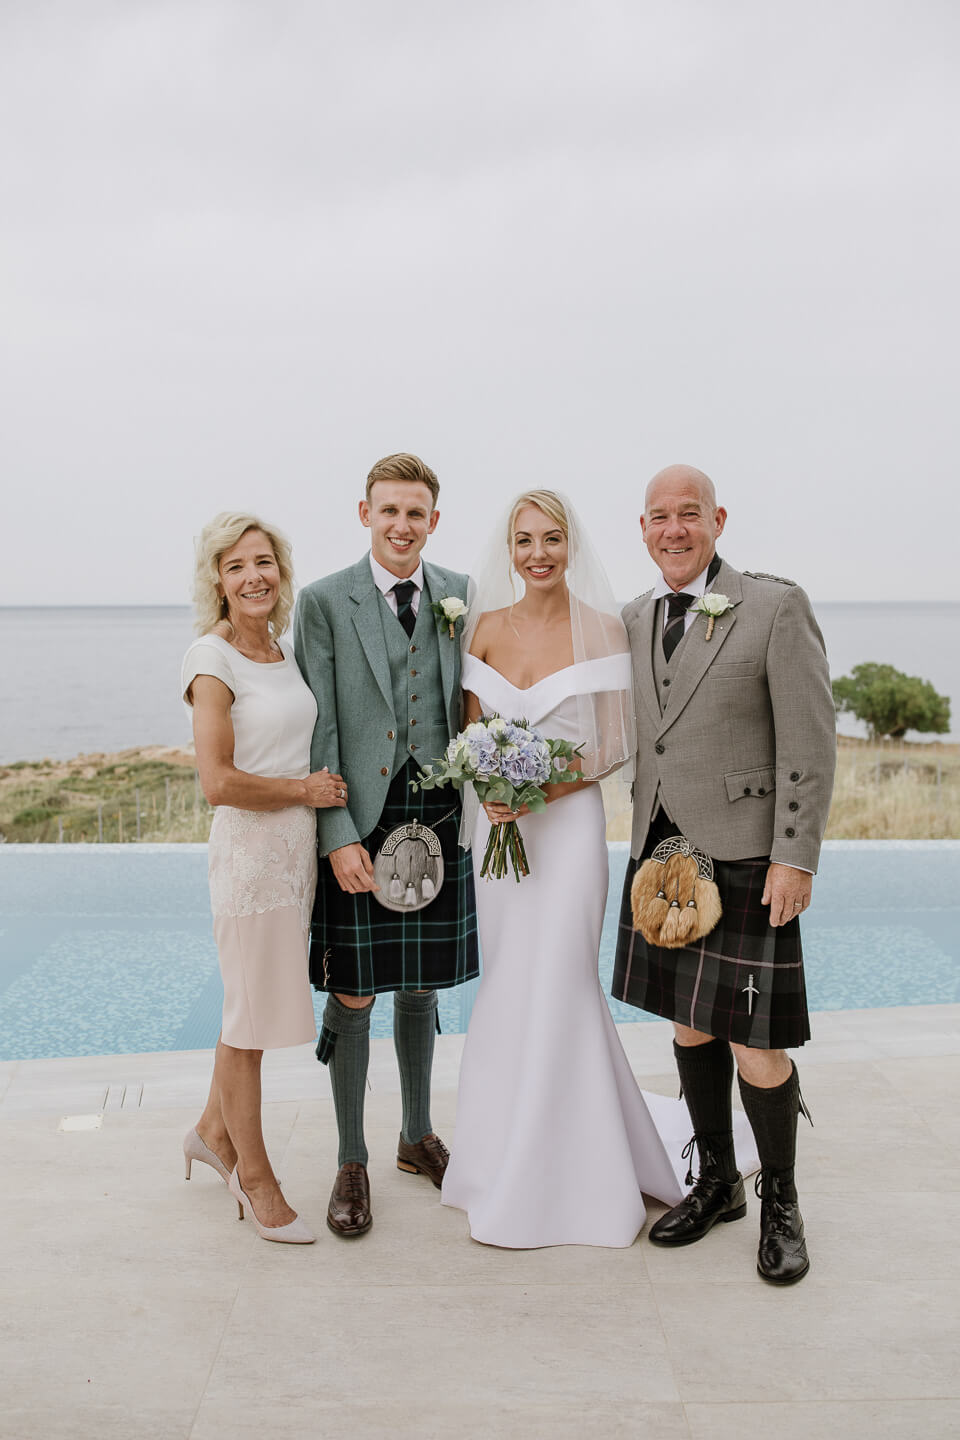 Scottish Wedding Irini Koronaki Professional Wedding Photographer Photography Crete Chania Greece